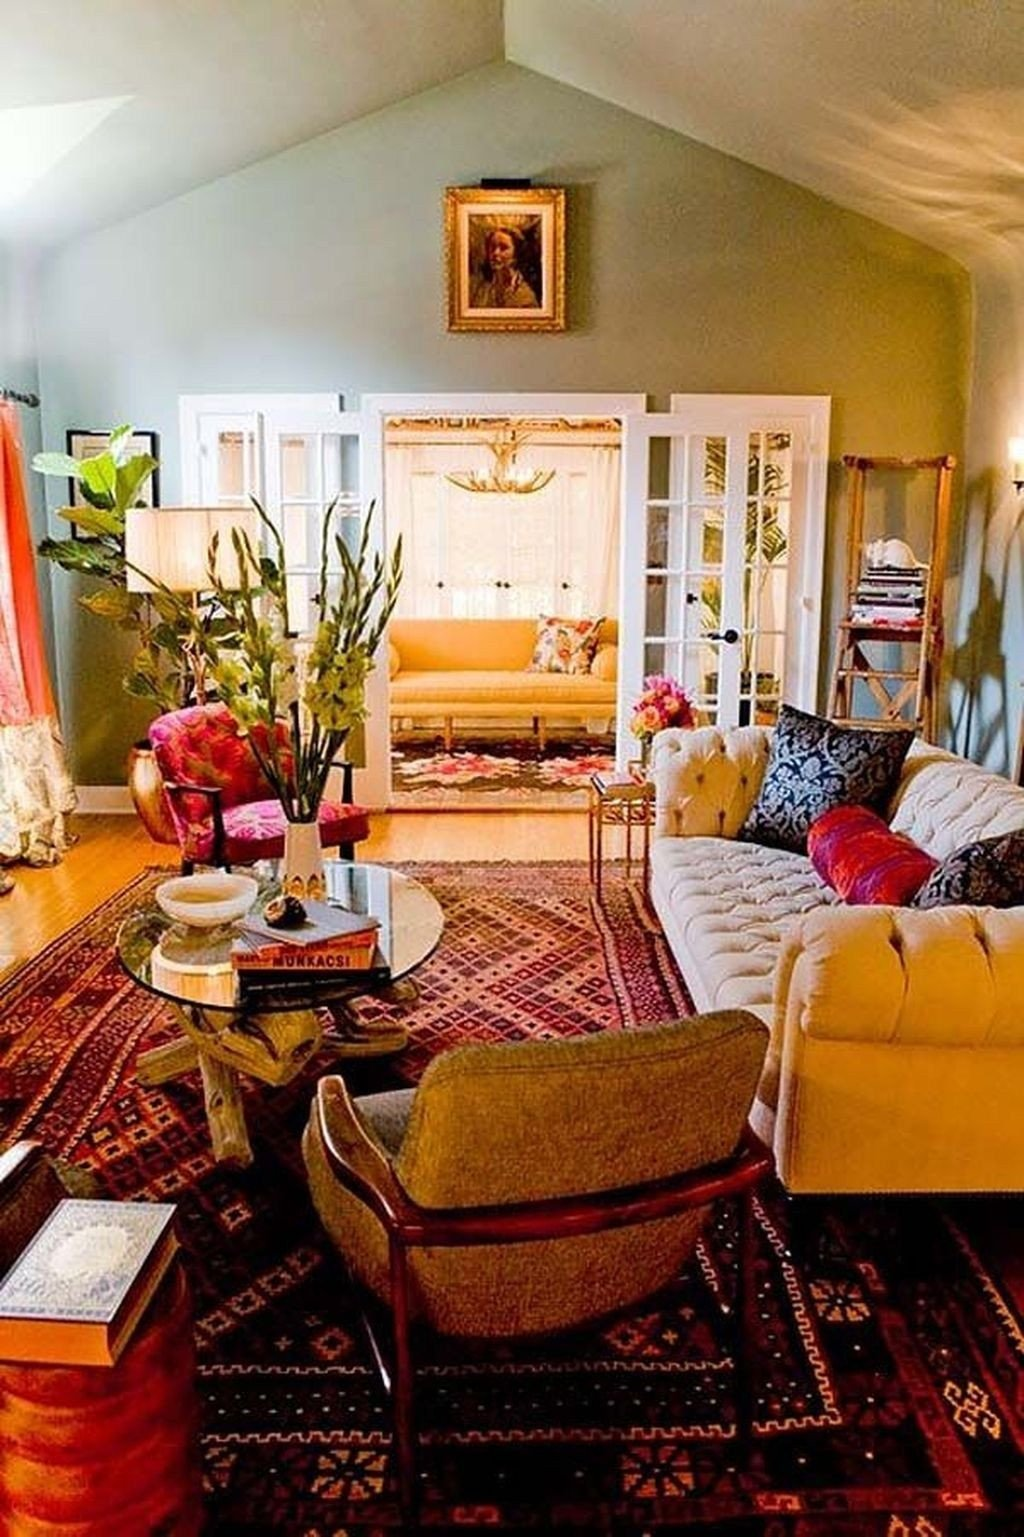 Small Bohemian Living Room Ideas Modern Bohemian Living Room Ideas for Small Apartment 46